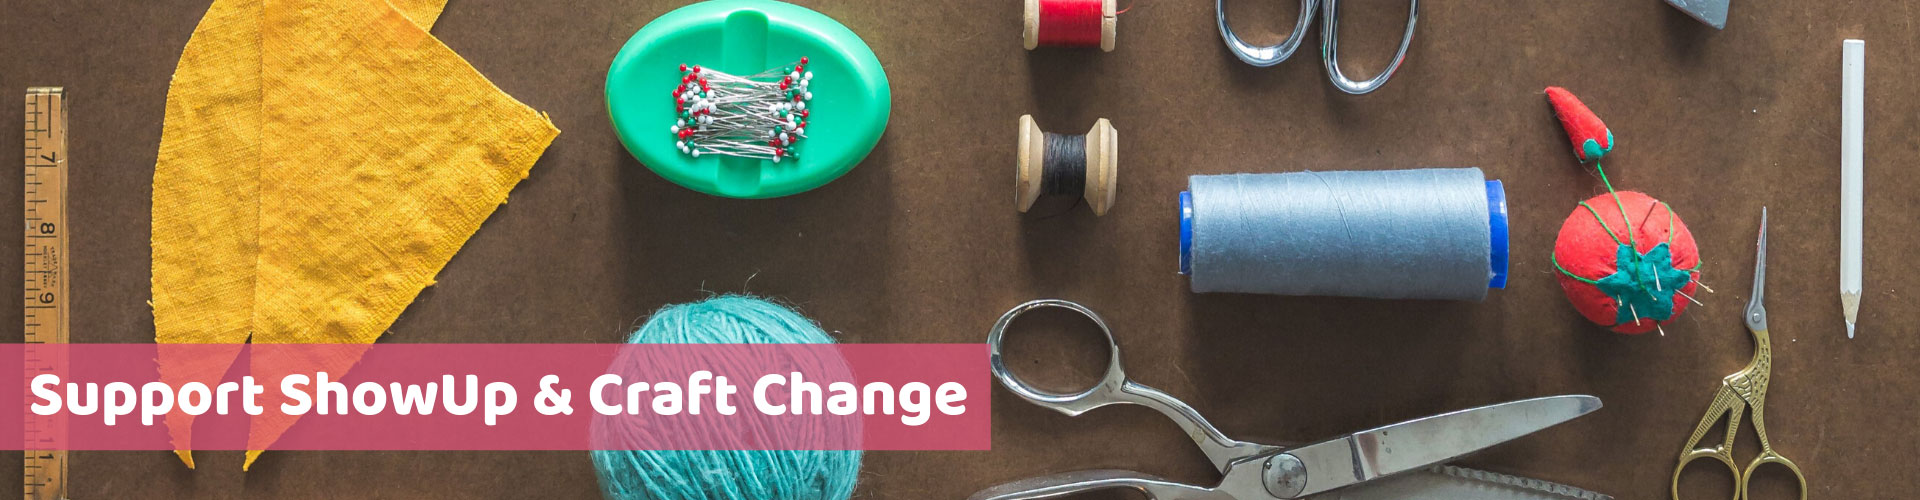 Support ShowUp & Craft Change